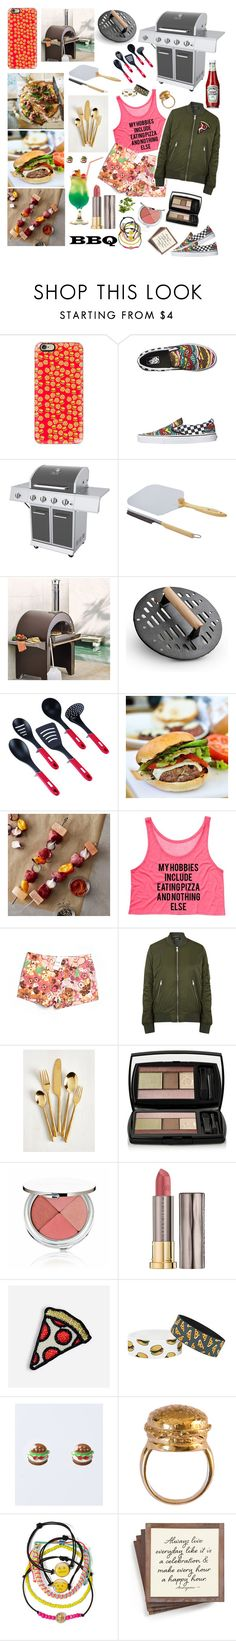 """BBQ  02"" by stellastar22 ❤ liked on Polyvore featuring interior, interiors, interior design, home, home decor, interior decorating, Casetify, Vans, Dyna-Glo and Improvements"